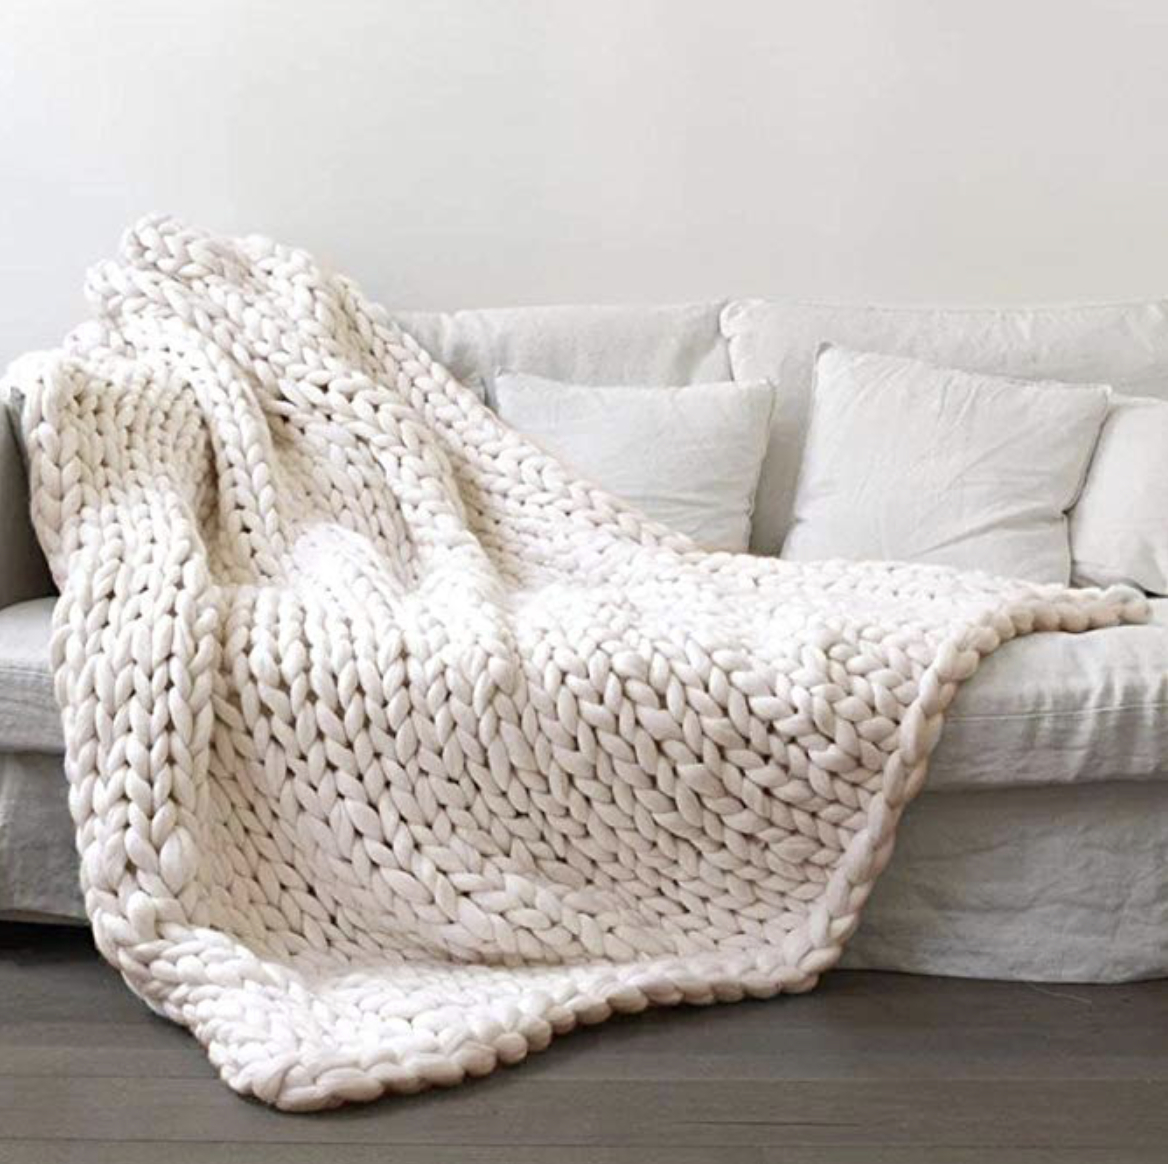 Hand Knitted Throw Patterns Winter Warm Hand Knitted Throw Blanket The Pickled Rose